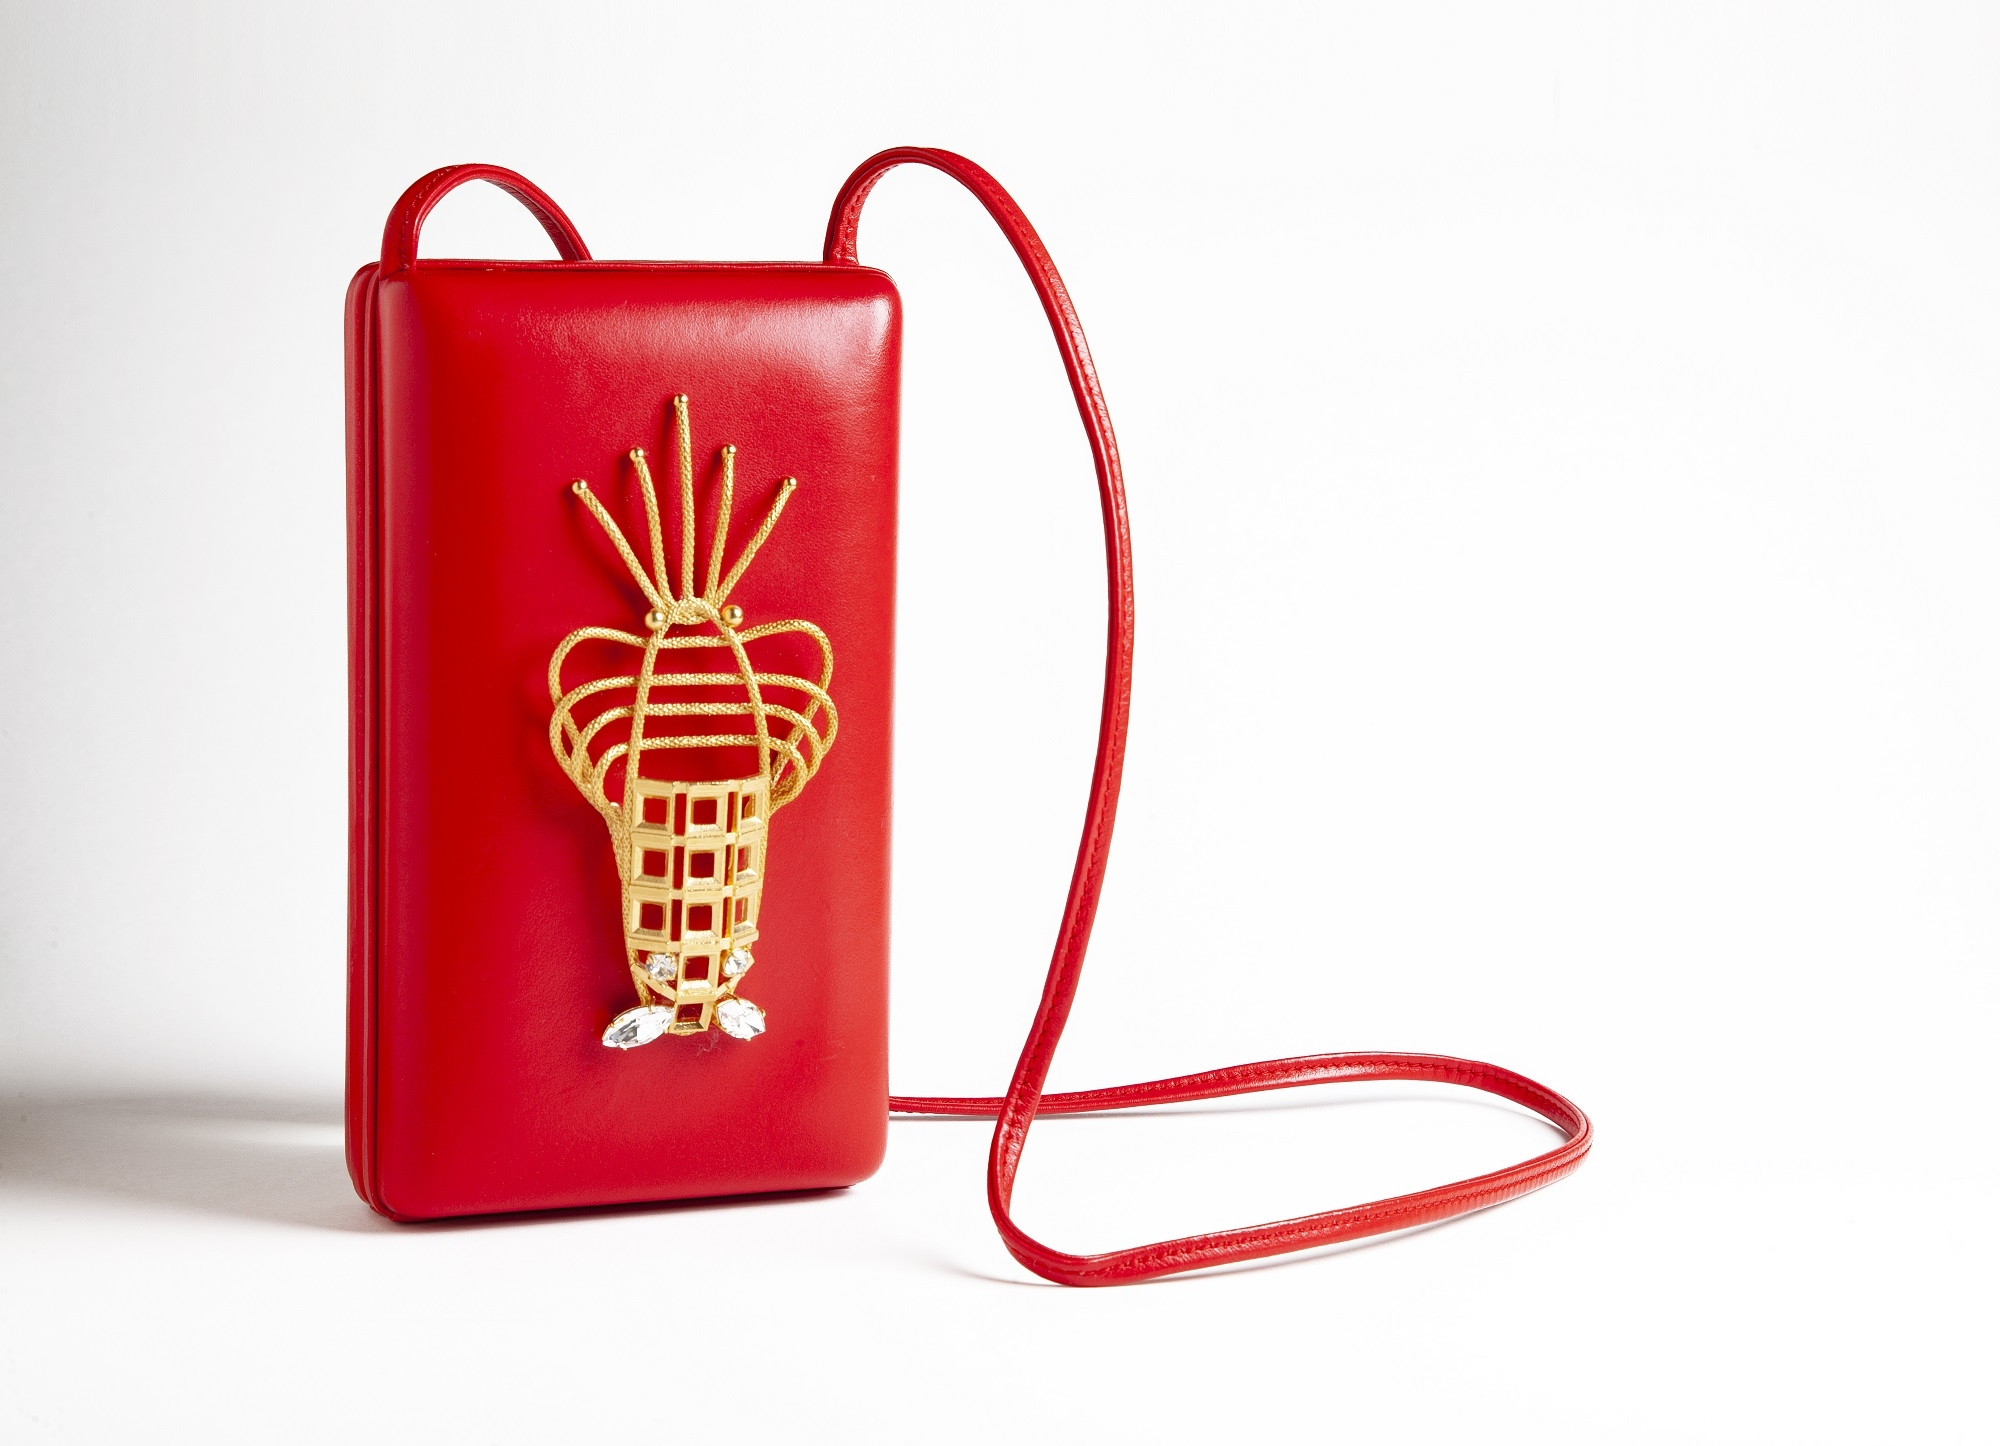 Red Lobster Luxury Handbag by Sonia Petroff on curated-crowd.com